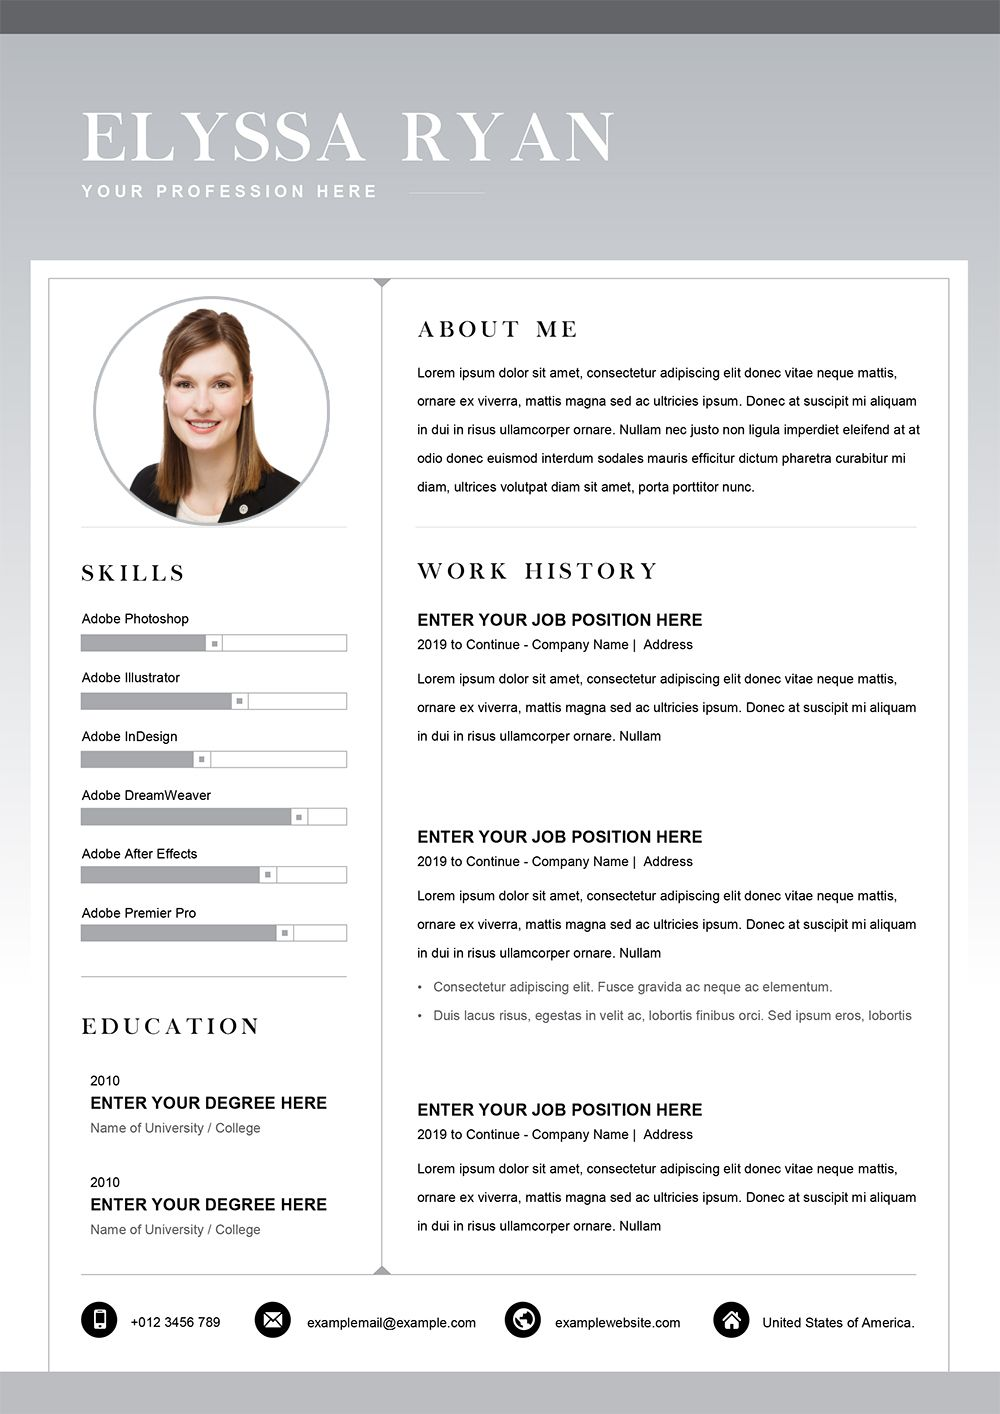 This Resume Template in Word Format is a lever that will